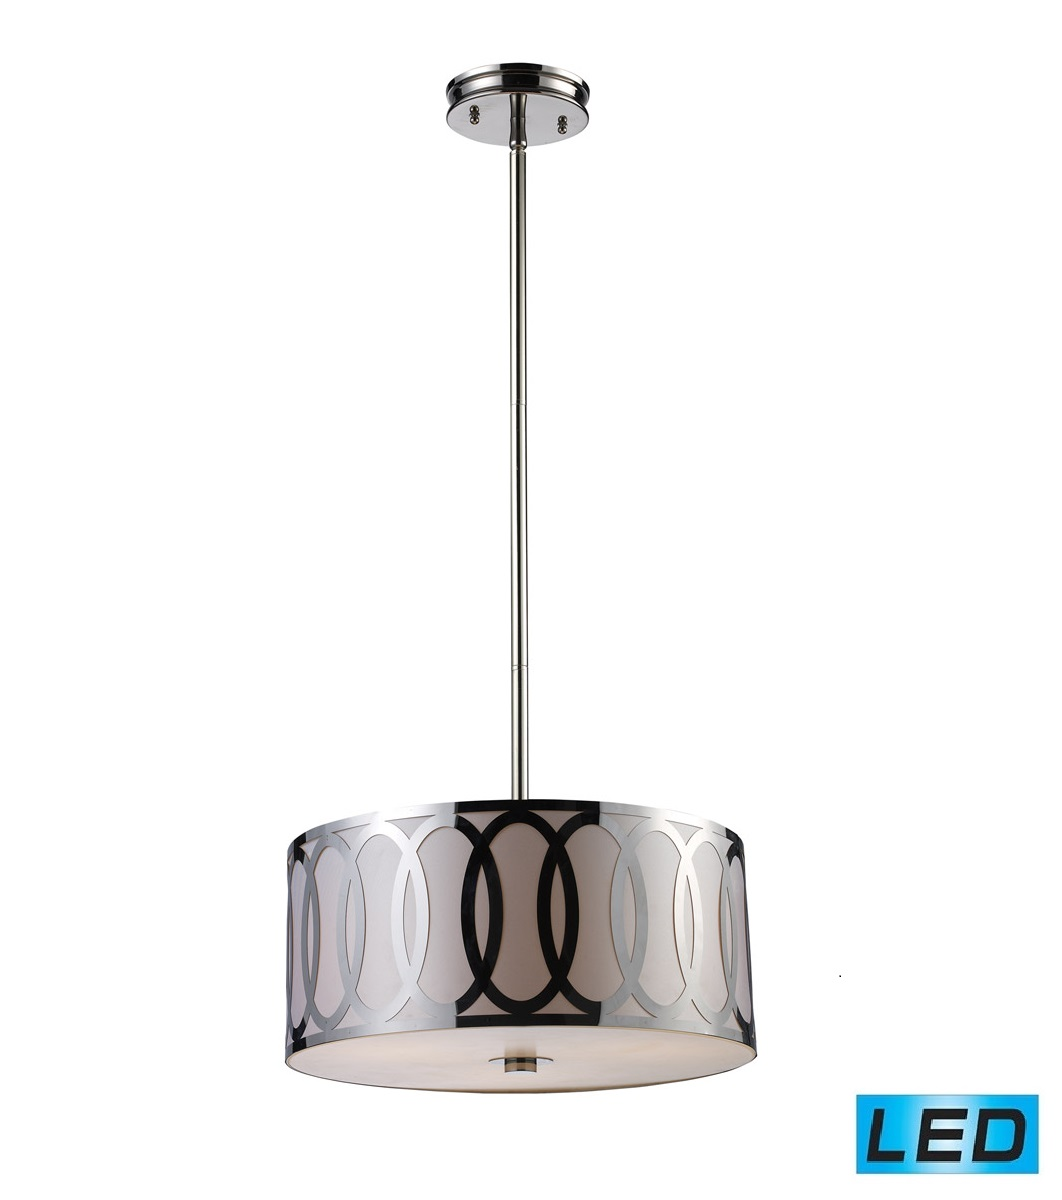 ELK Lighting Anastasia 10173 Pendant Lights Brooklyn, New York by Accentuations Brand